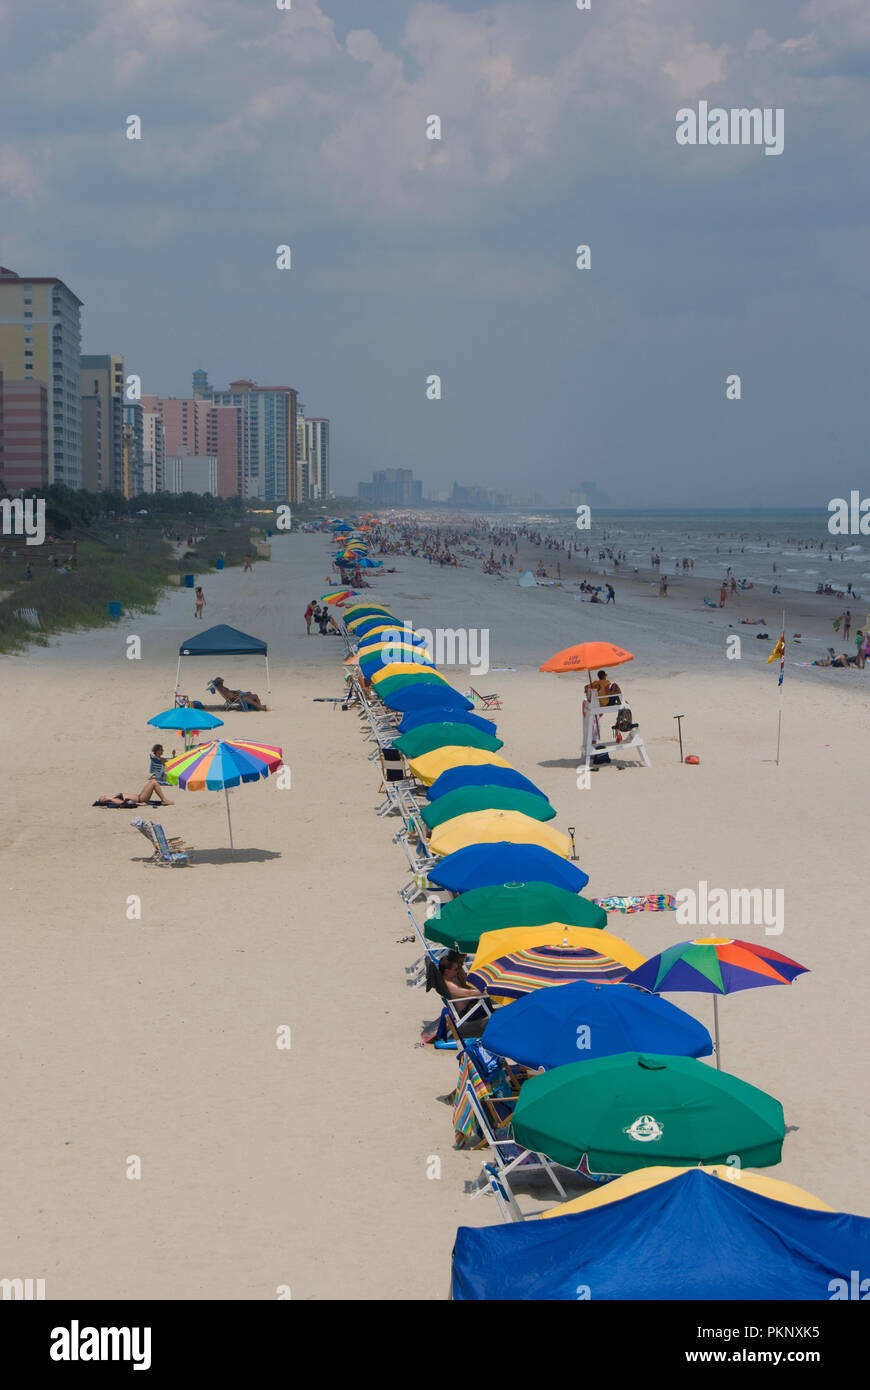 Myrtle Beach, South Carolina, shoreline photographed in 2008. - Stock Image